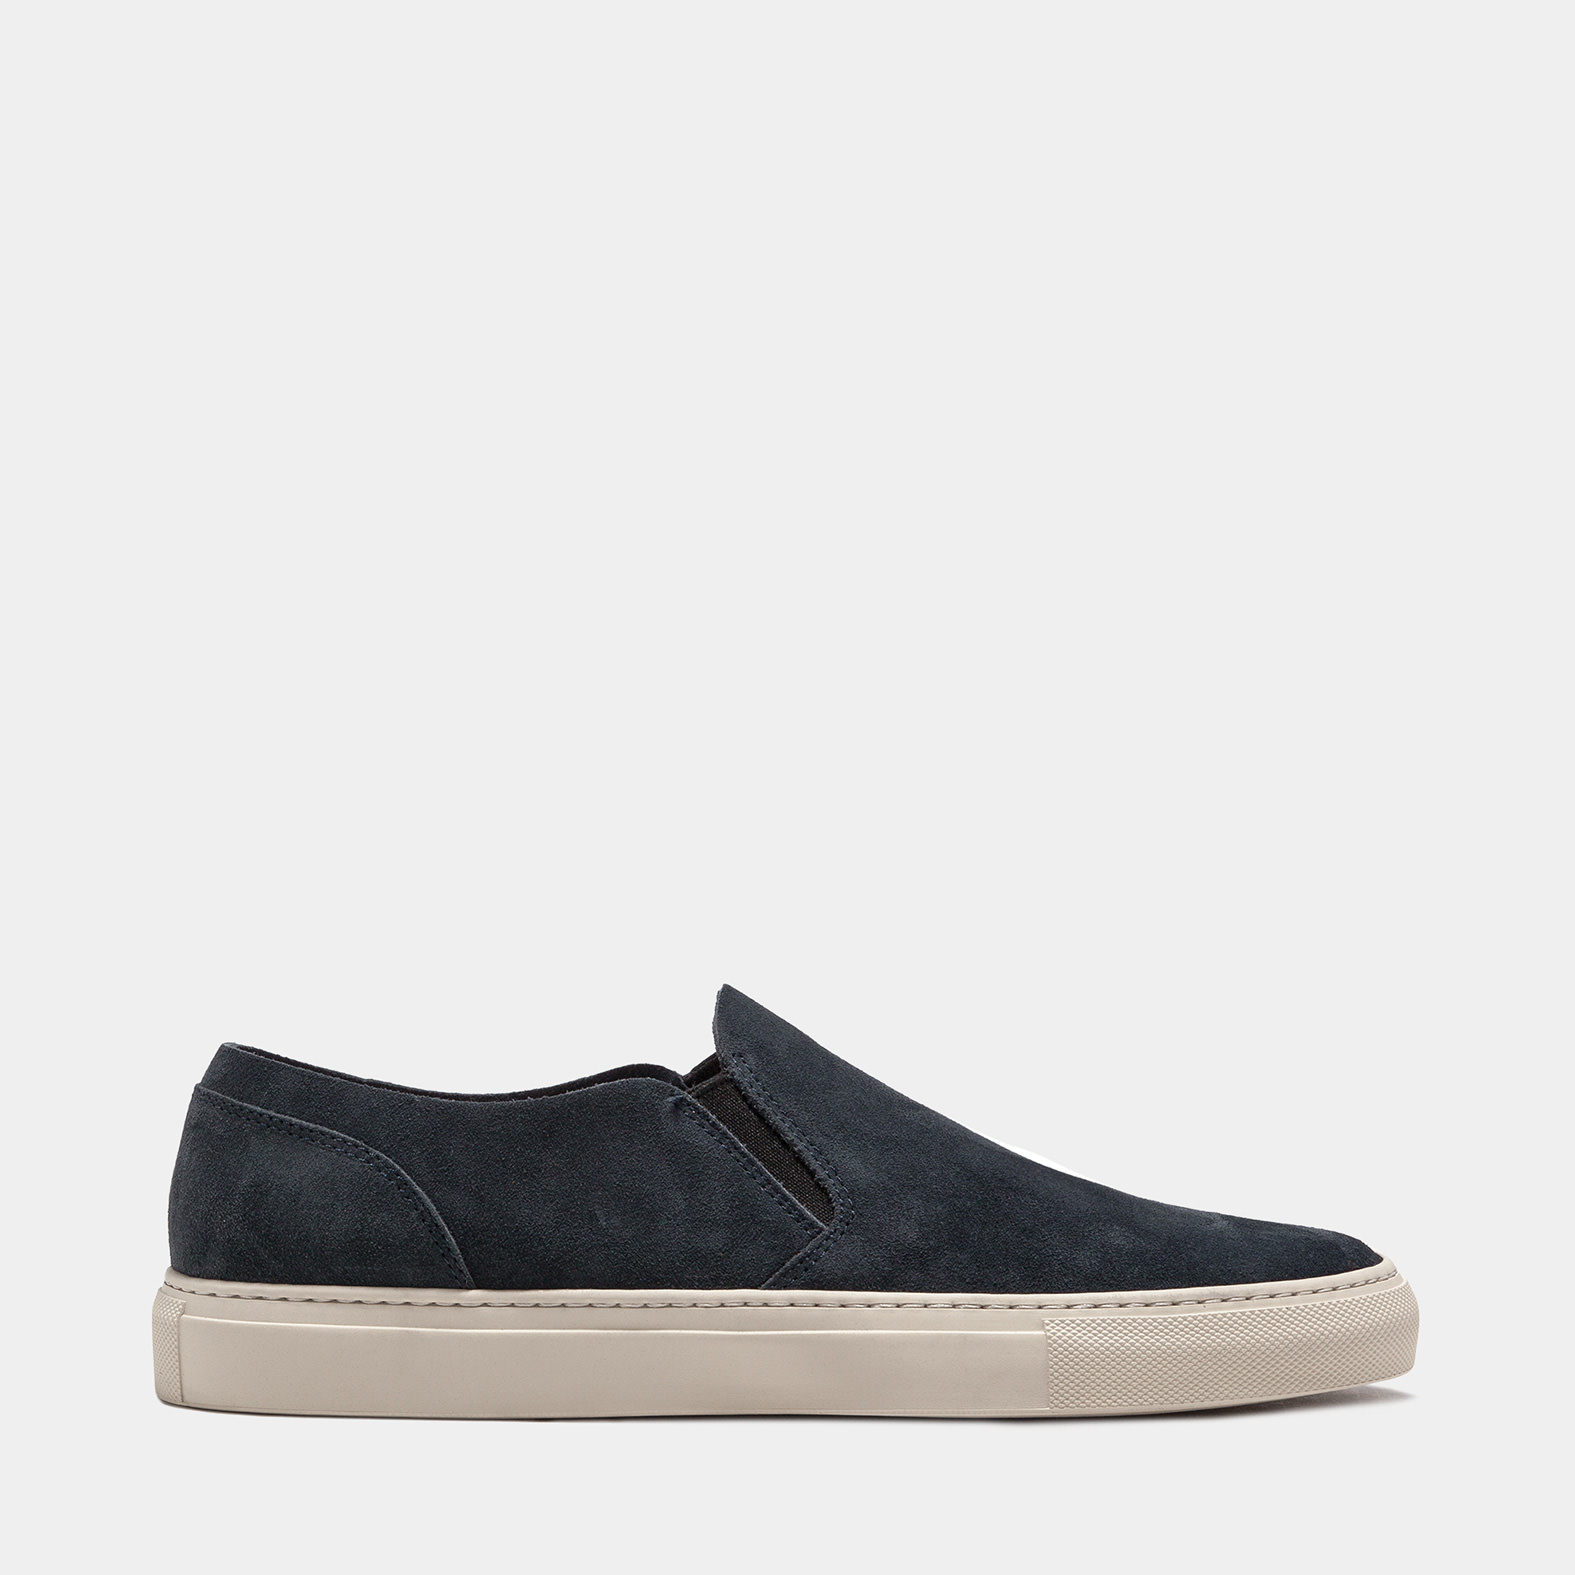 BUTTERO: STORM BLUE SUEDE TANINO SLIP ON